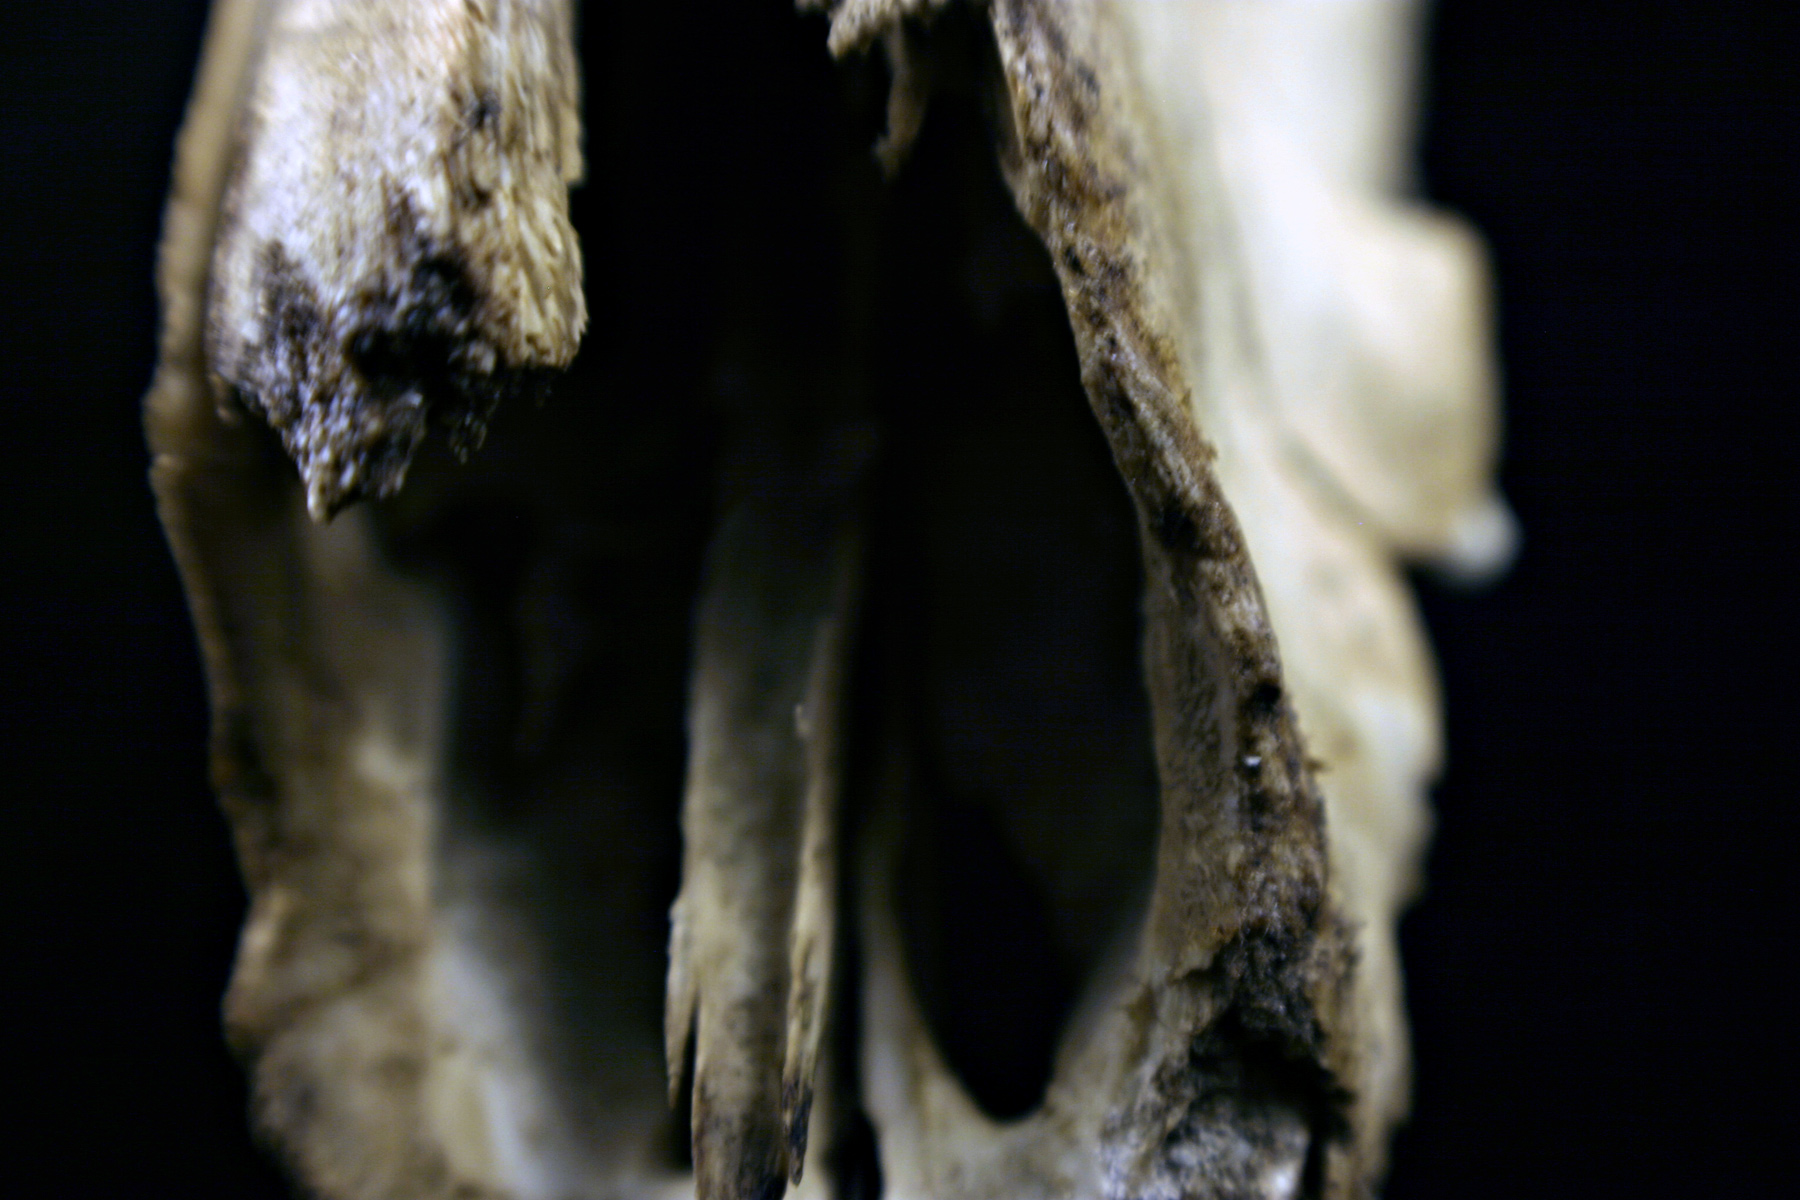 Sheep skull photo